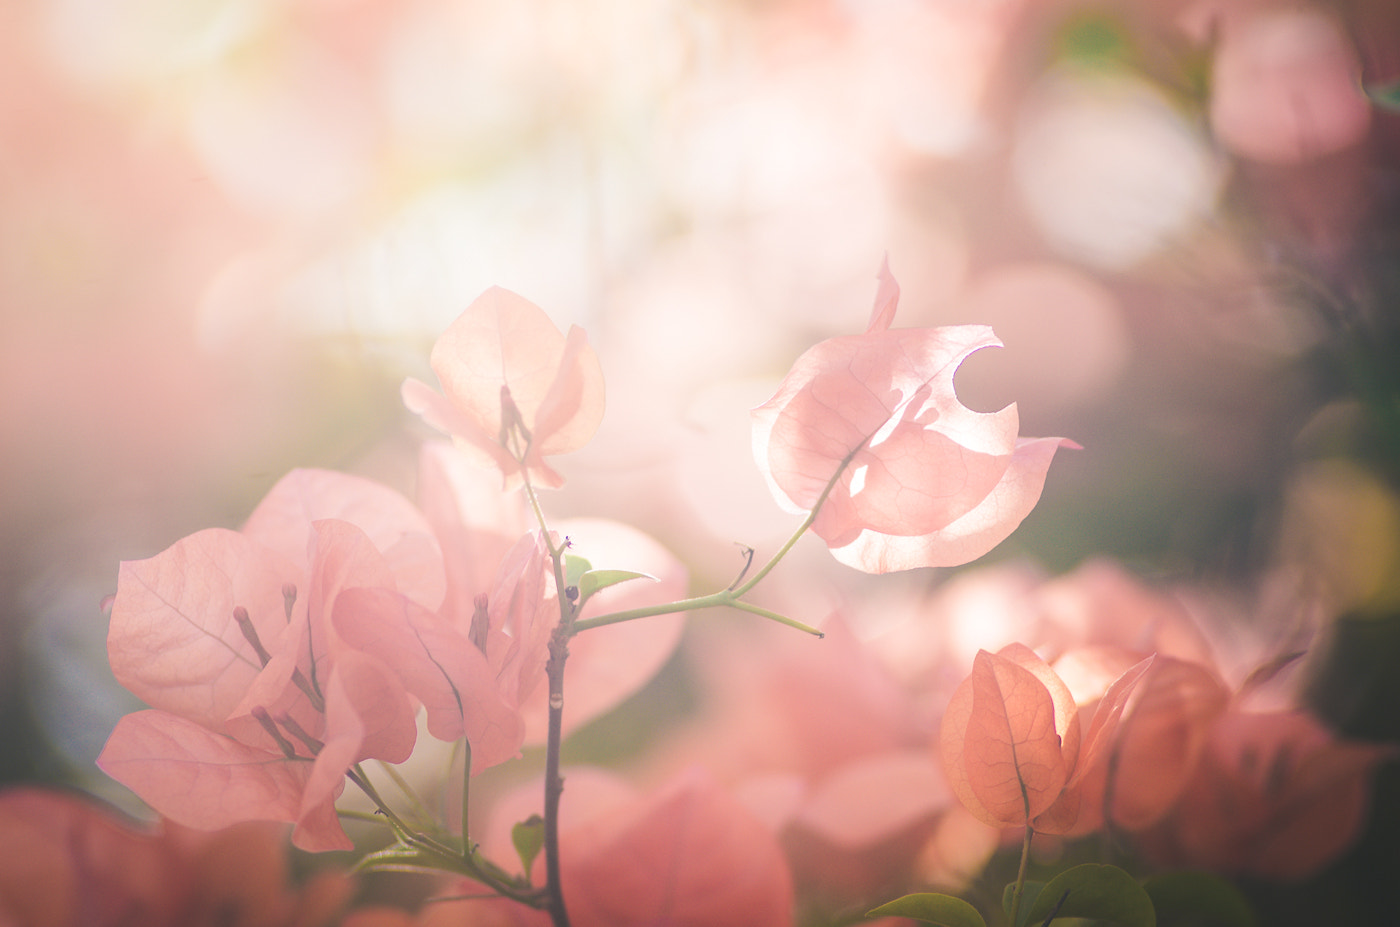 Photograph Paper flower by Peerasith Chaisanit on 500px